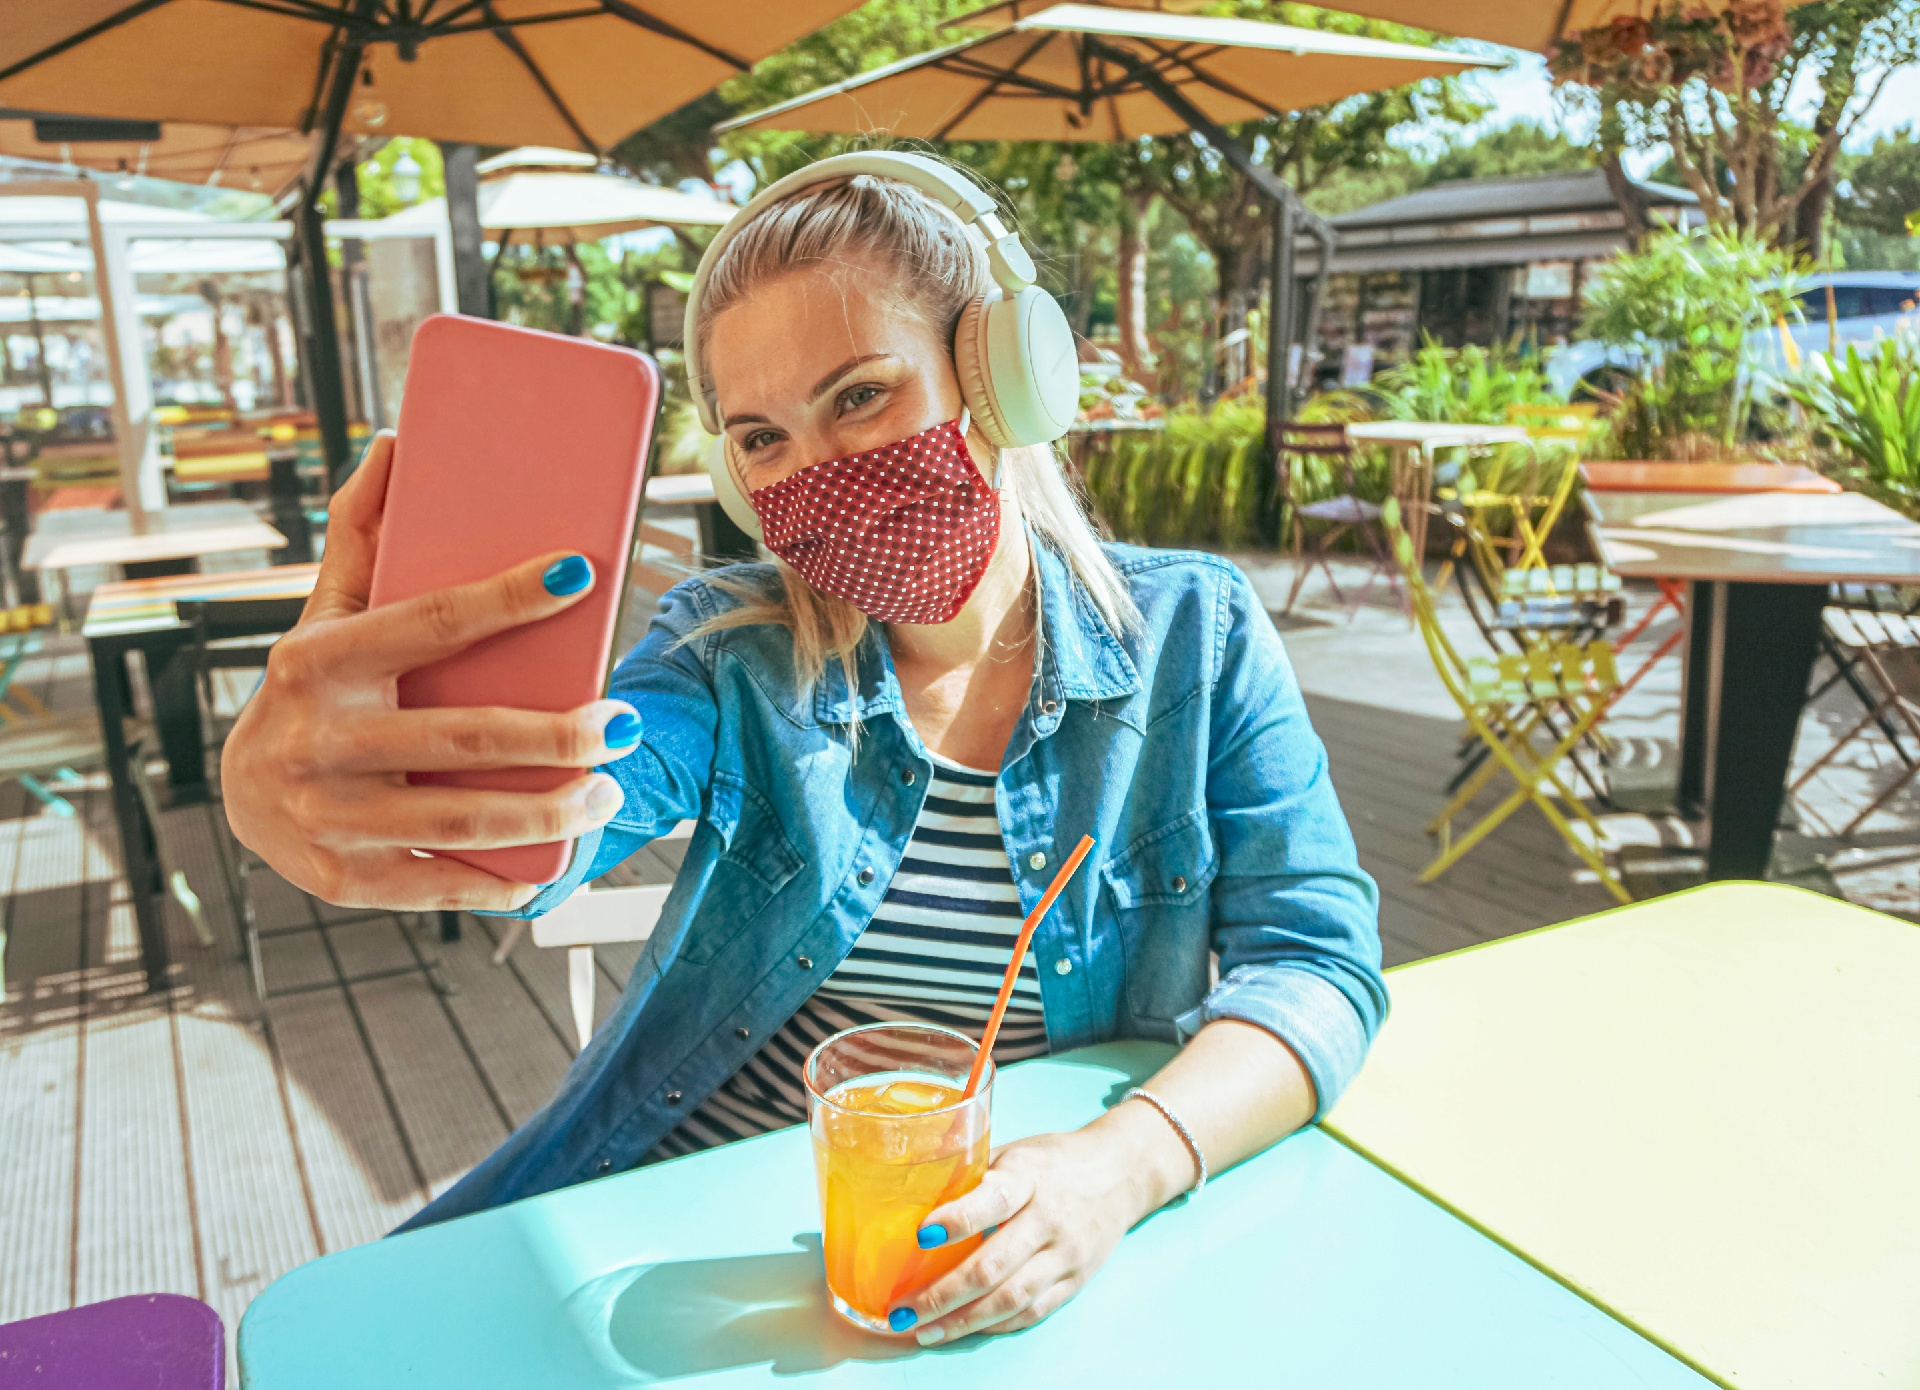 Girl taking selfie with mask at outdoor patio